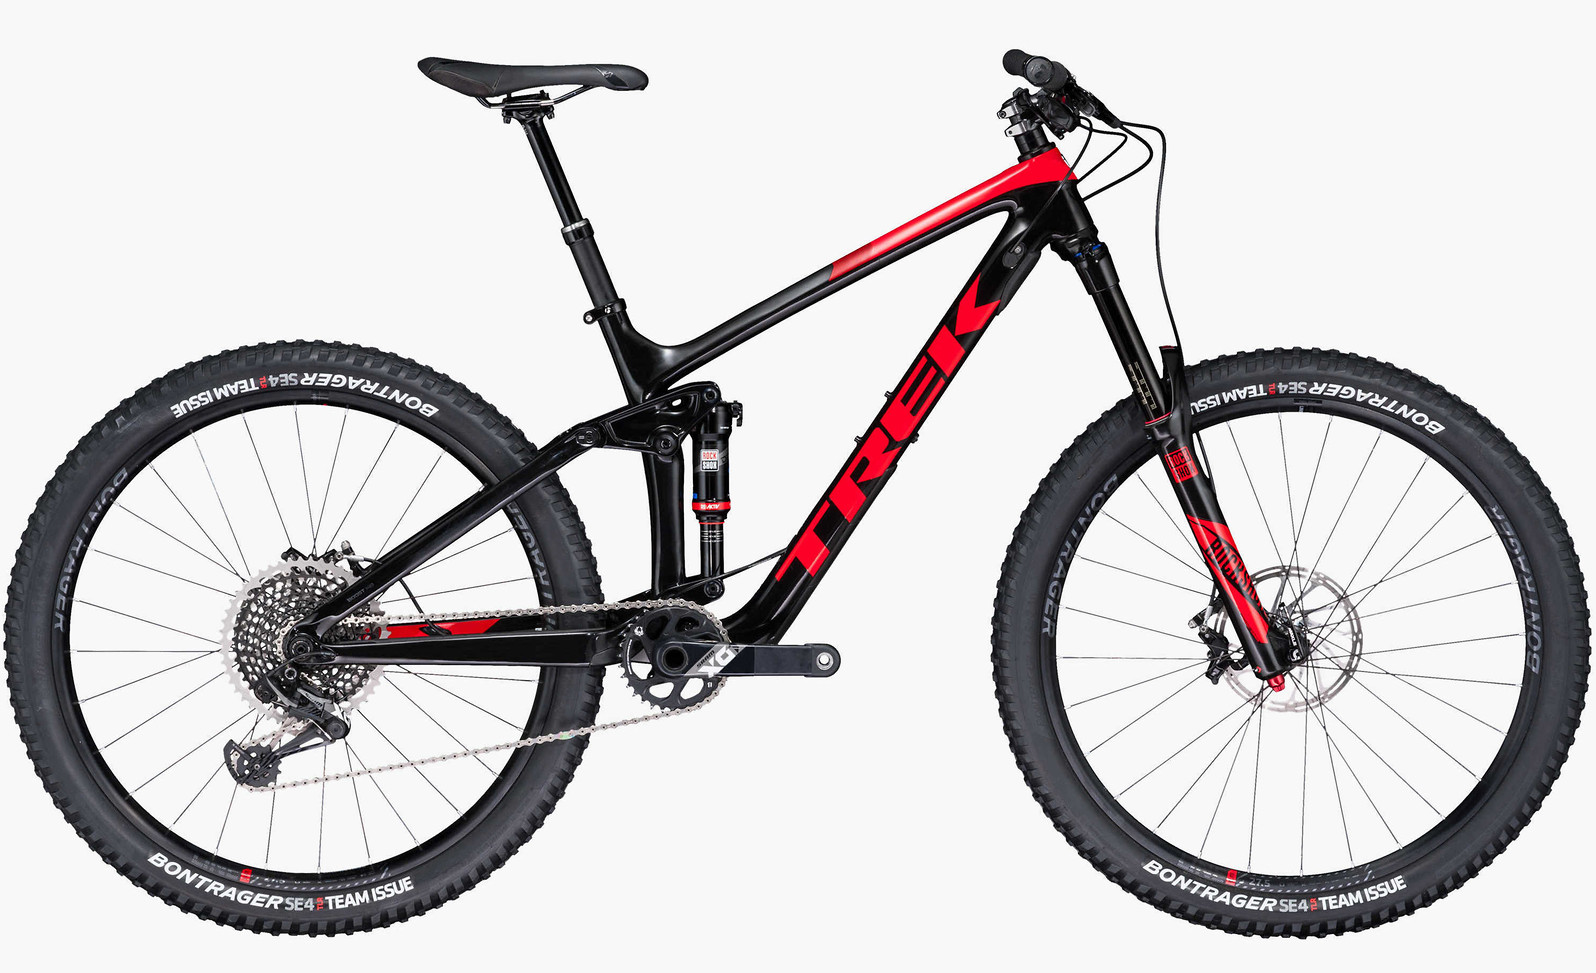 2017 Trek Remedy 9.9 Race Shop Limited  2017 Trek Remedy 9.9 Race Shop Limited Bike